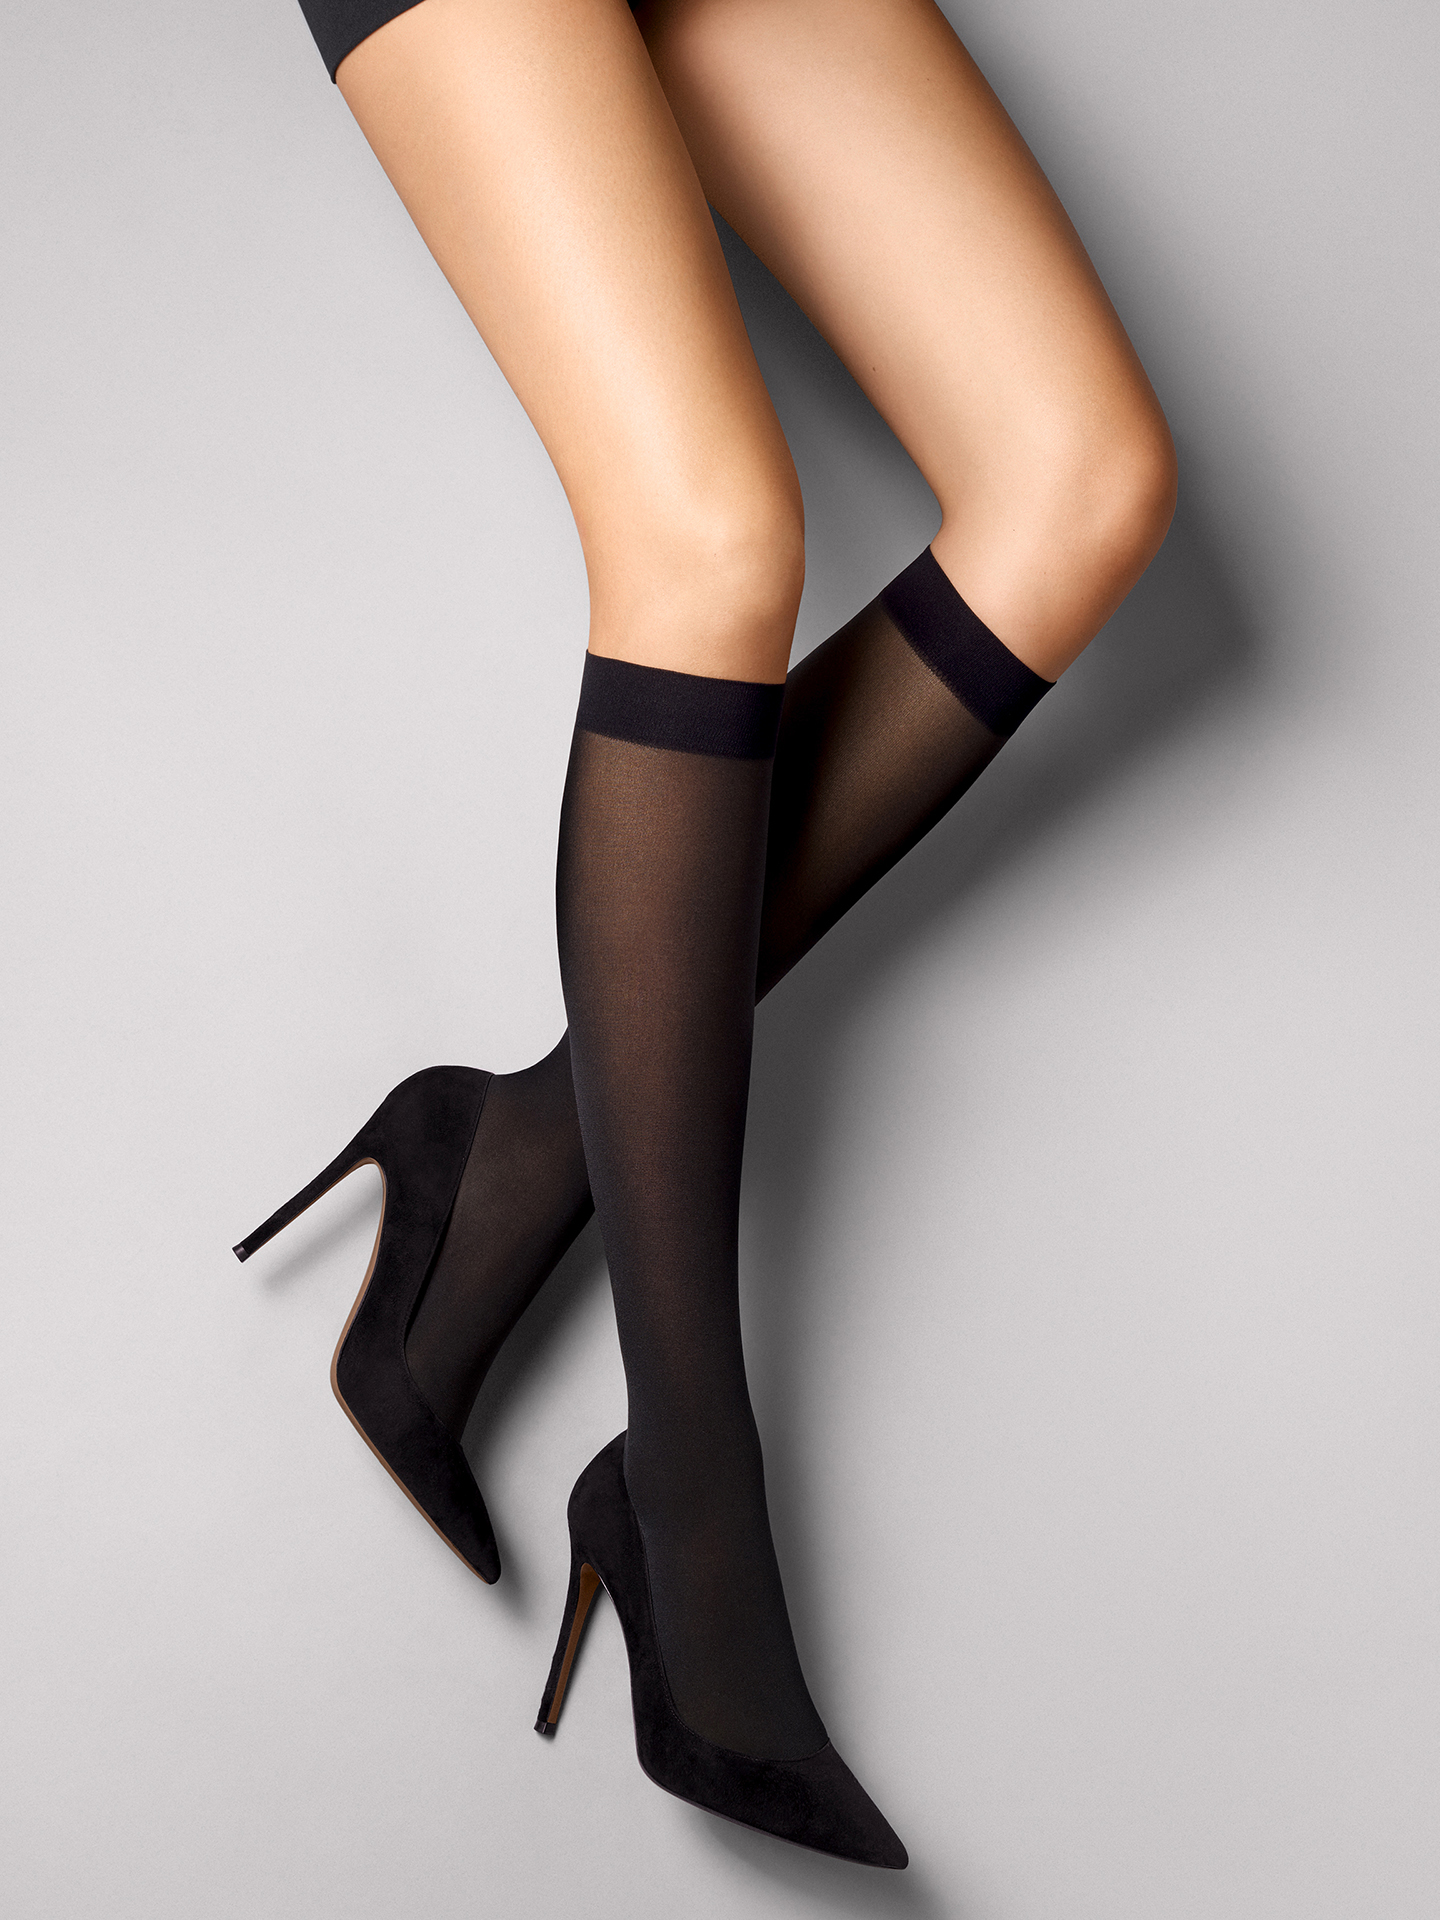 Wolford Apparel & Accessories > Clothing > Gambaletti Satin Opaque Nature Knee-Highs - 7005 - S